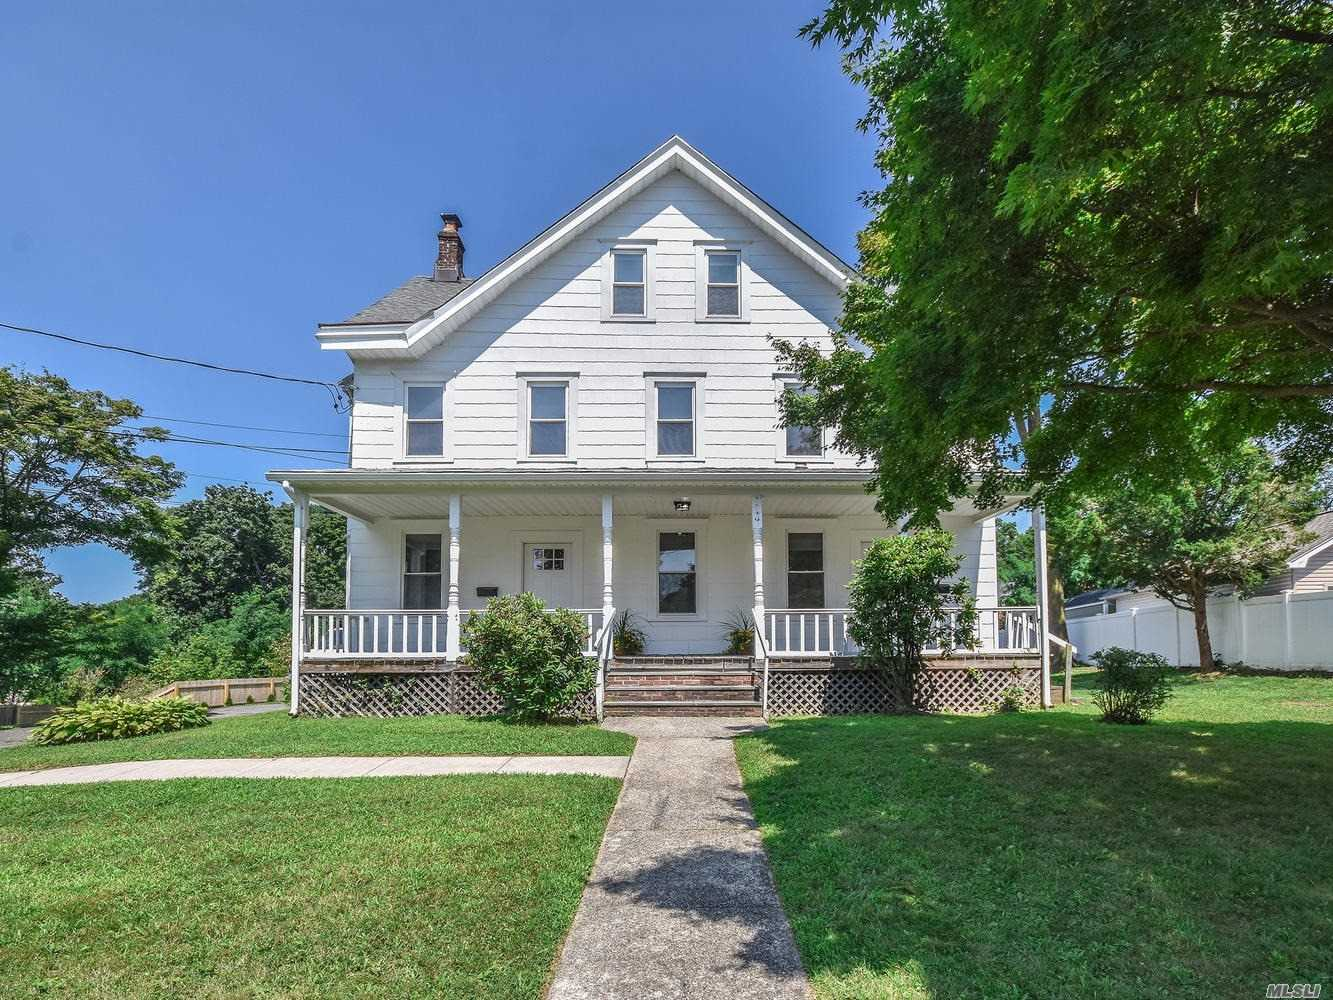 New & Clean...Total Renovation Of This Charming 2 Family Home. Room Sizes Are Very Generous. Washer & Dryer In Apartment,  Central Air Conditioning, Parking For 2 Cars. Close To The Sea Cliff Stop On The Lirr And To Stores!